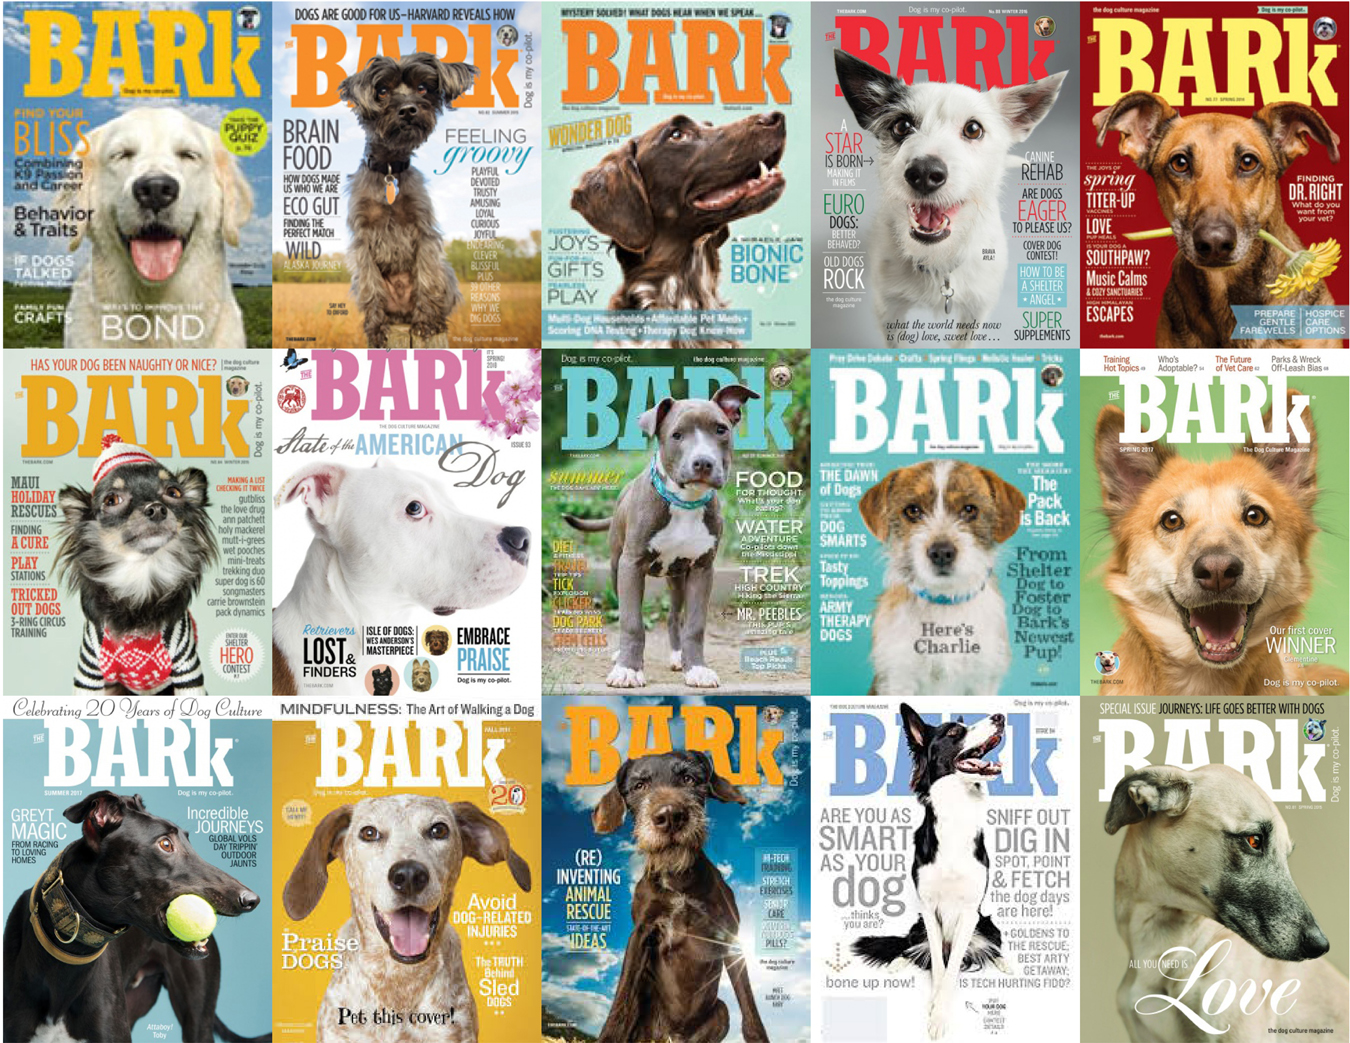 Go to TheBark.com to see what's happening.